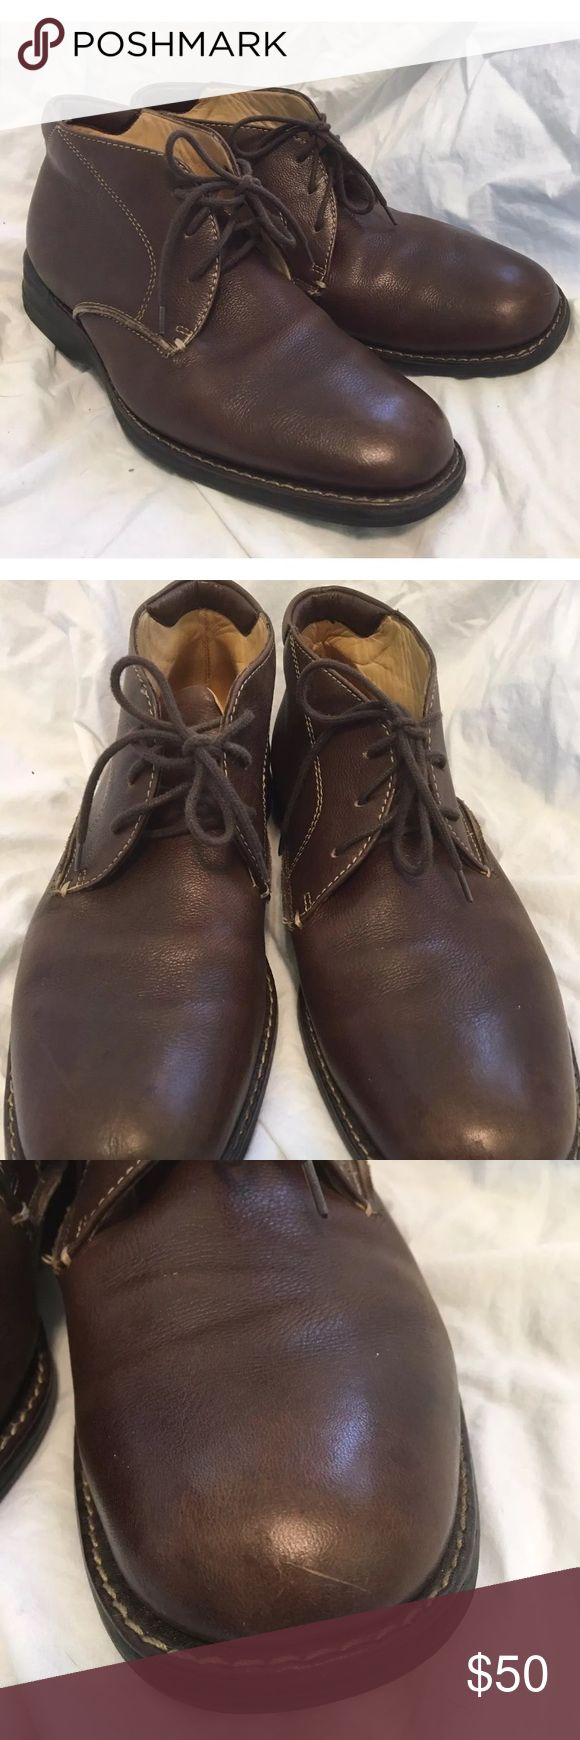 Johnston & Murphy Brown Leather Chukka Boots 8.5 Very good condition. Have some scuffs/scratches see pictures. Sole could use a more thorough cleaning. Johnston & Murphy Shoes Chukka Boots